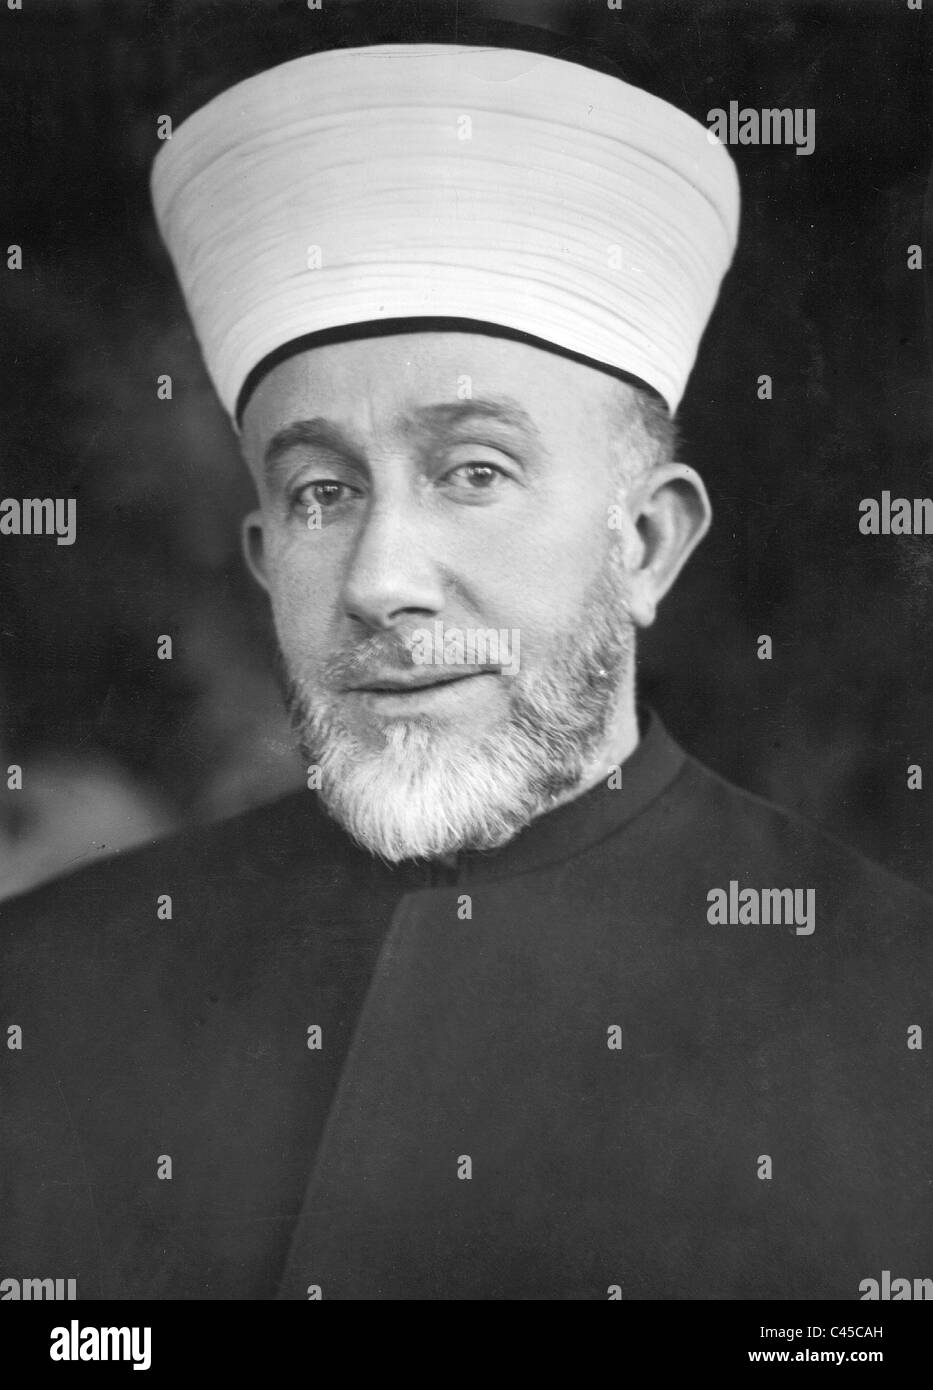 Grand Mufti Of JerusalemStock Photos and Images